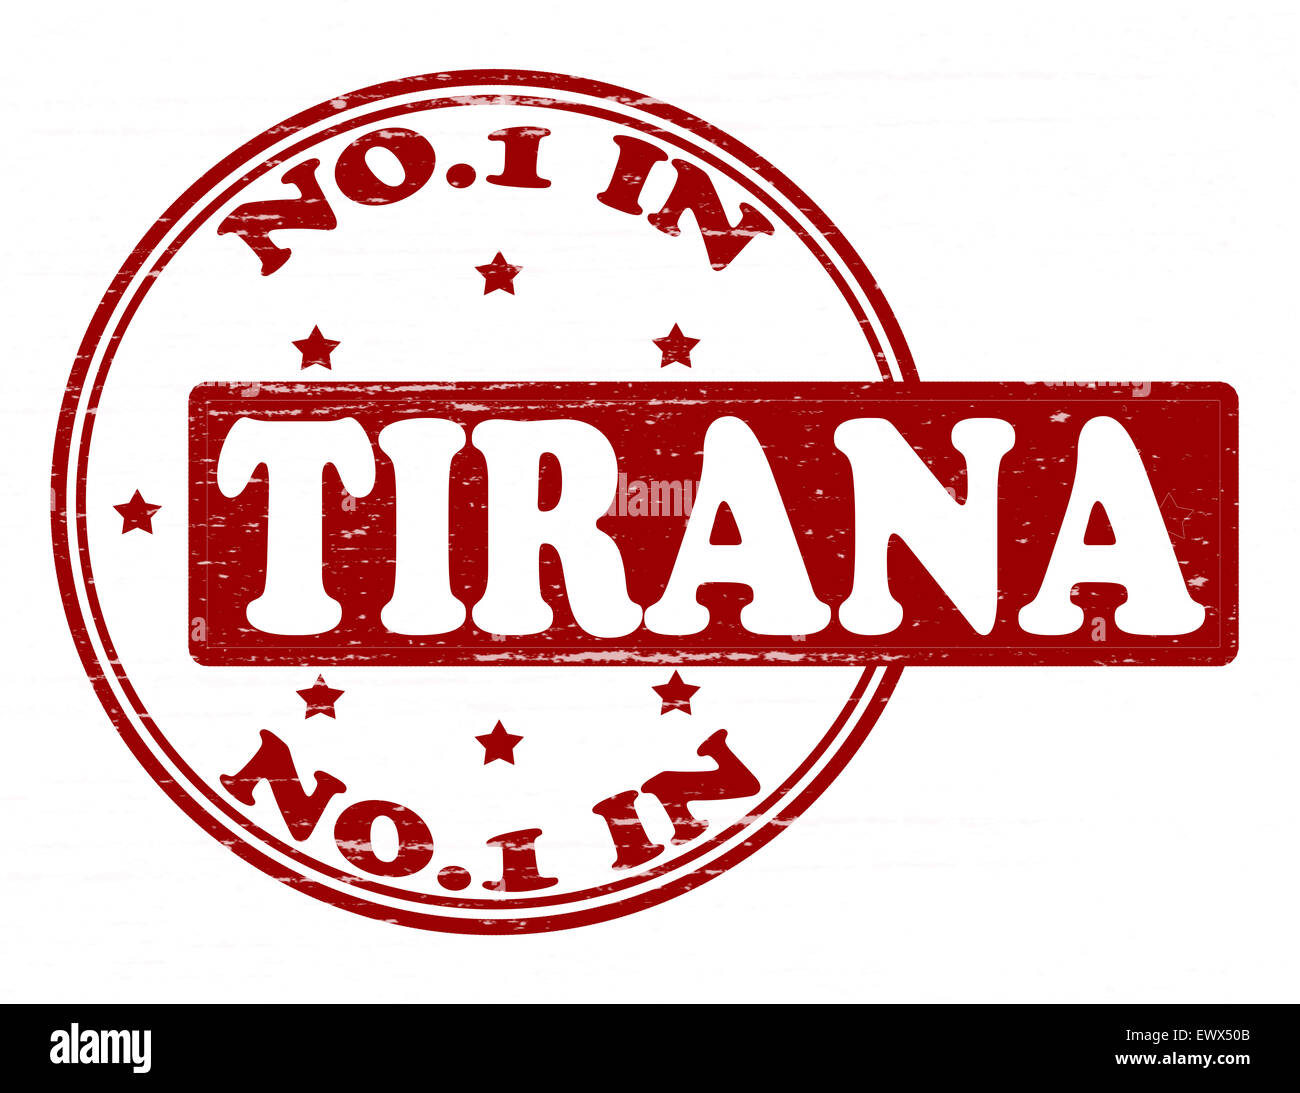 Stamp with text no one in Tirana inside, illustration - Stock Image